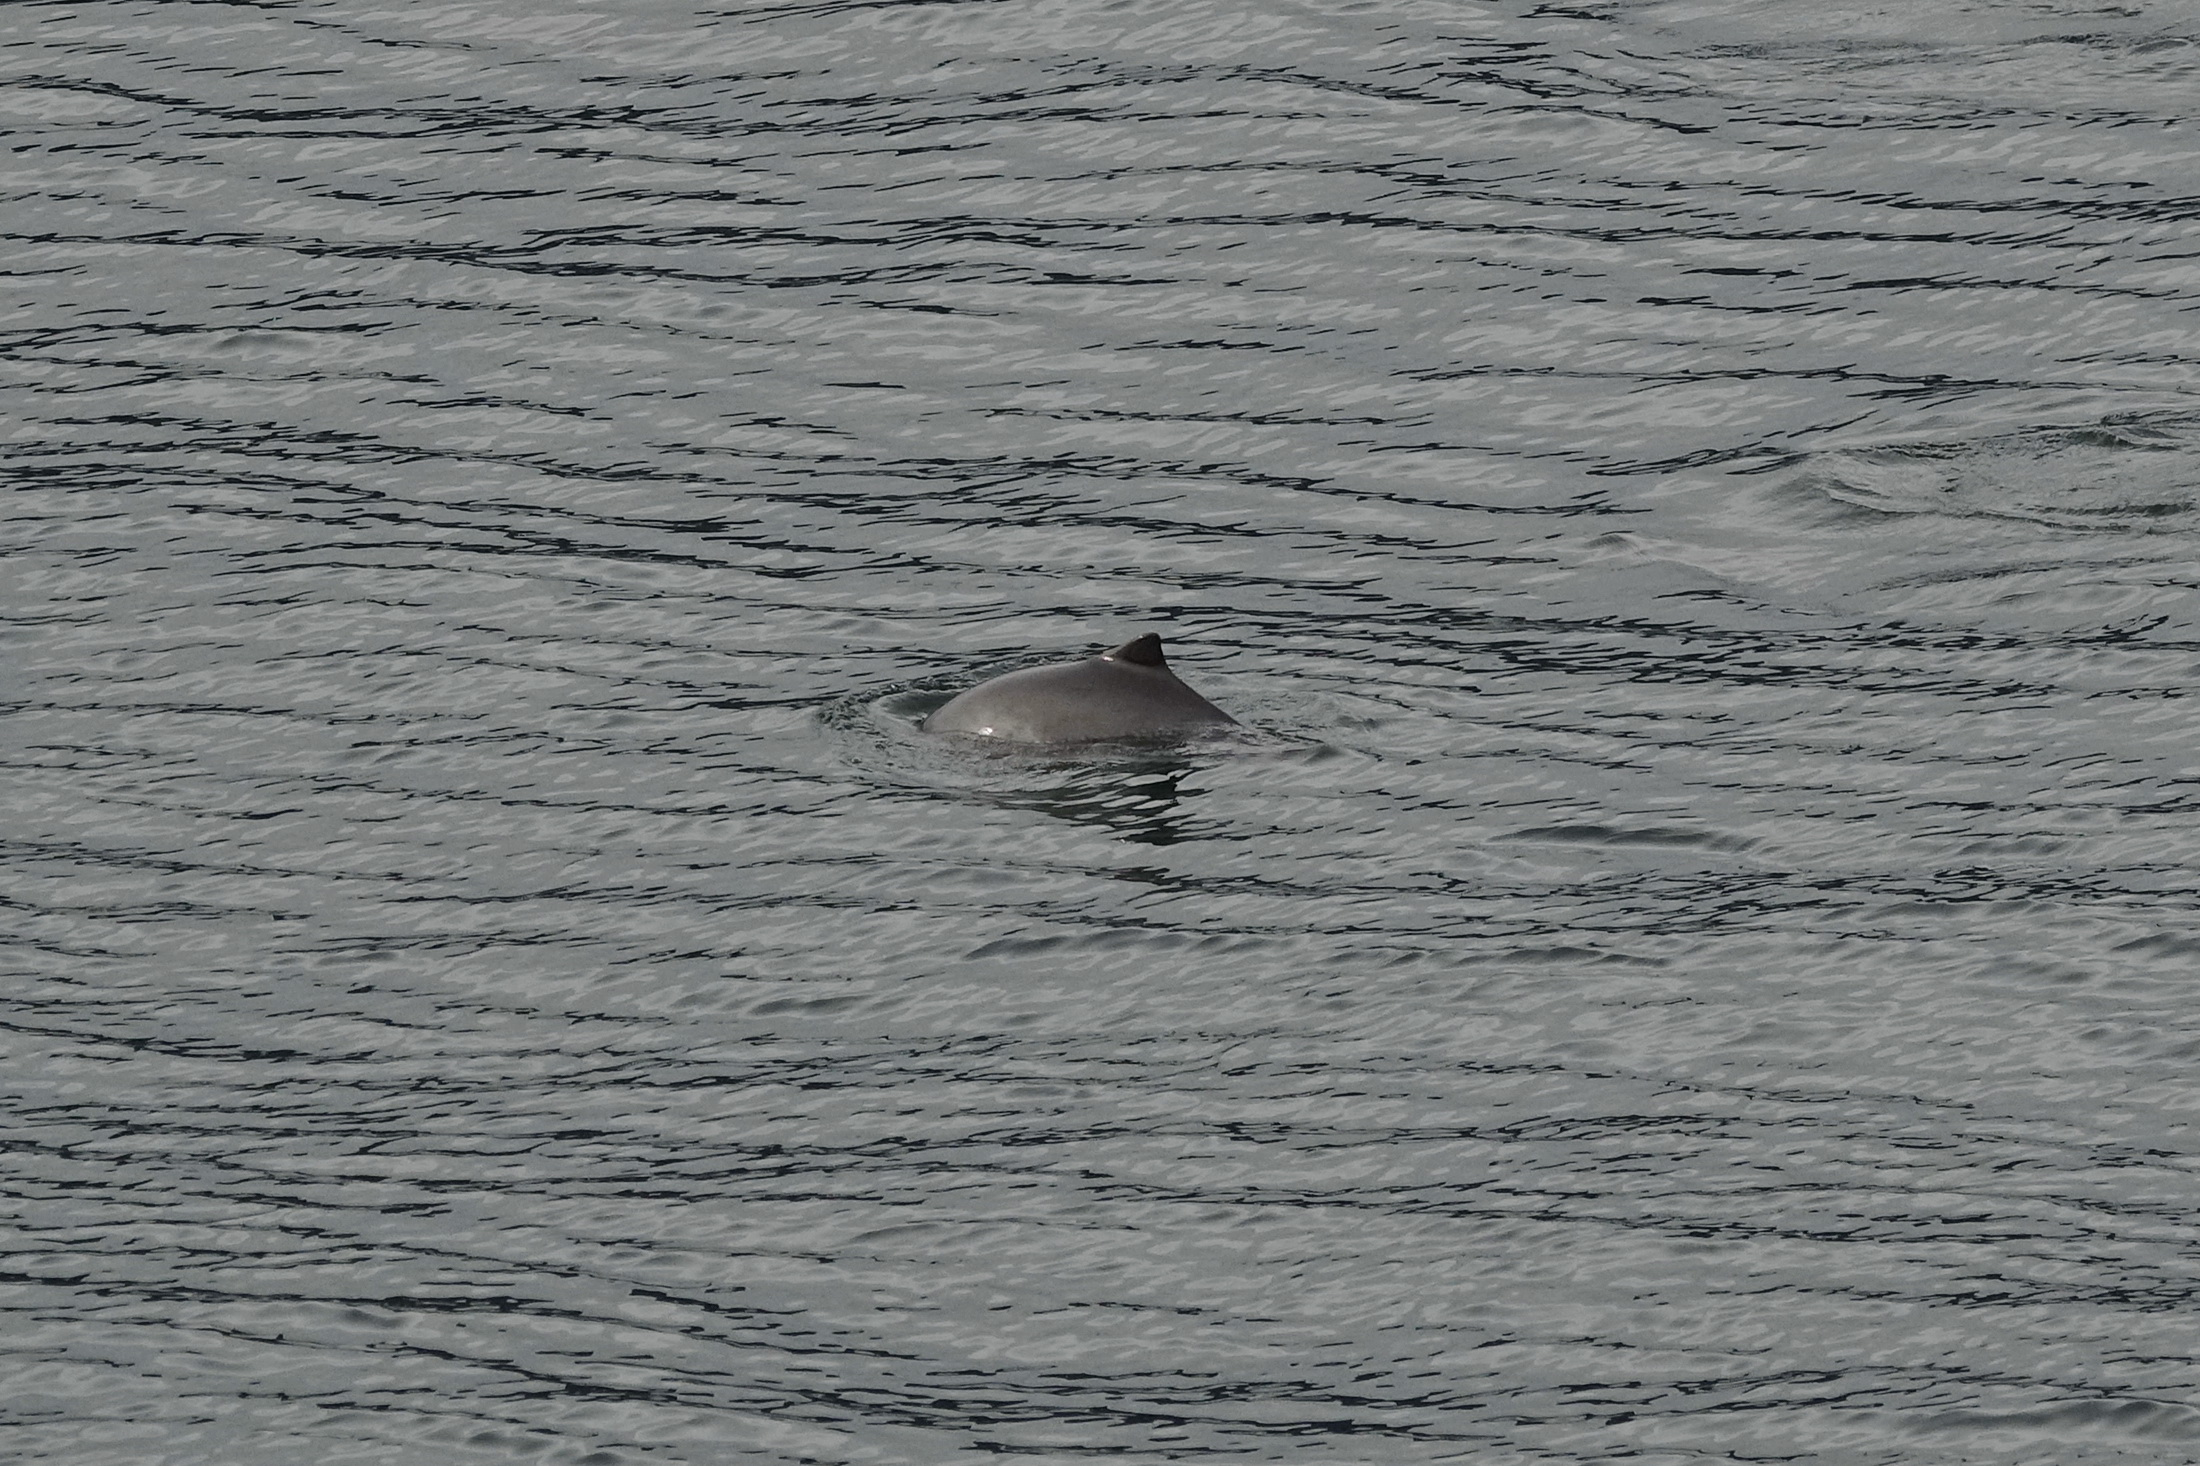 First Proper Harbour Porpoise Sightings in 2018! – 2/18